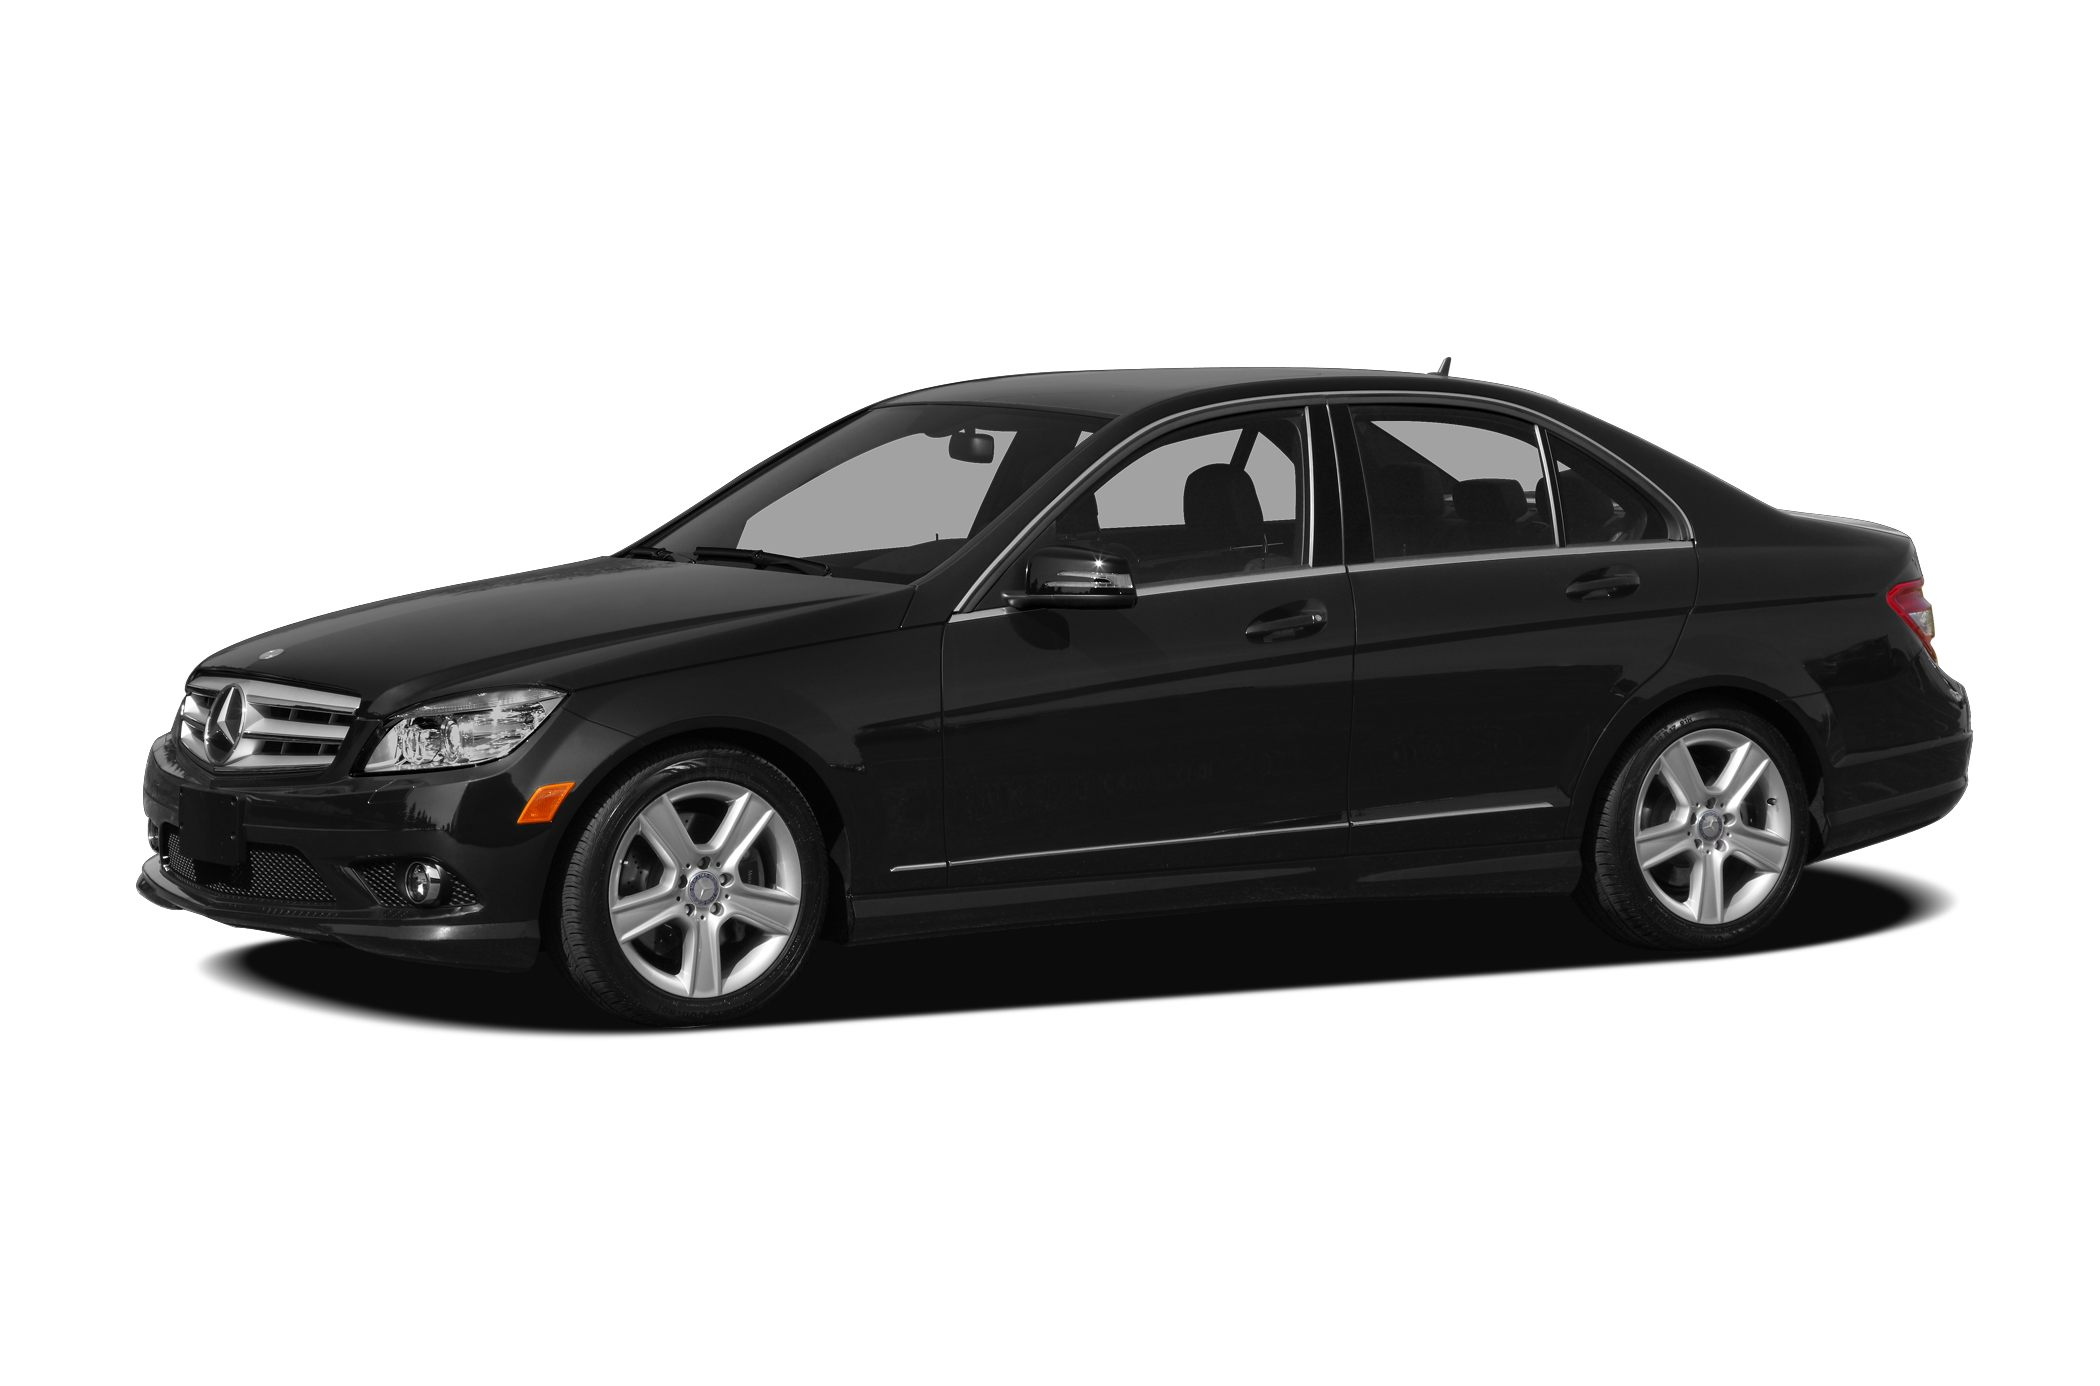 2010 MERCEDES C-Class  LEATHER AND LOADED  5 DAY 300 MILE EXCHANGERETURN POLICY  VALUE PRIC